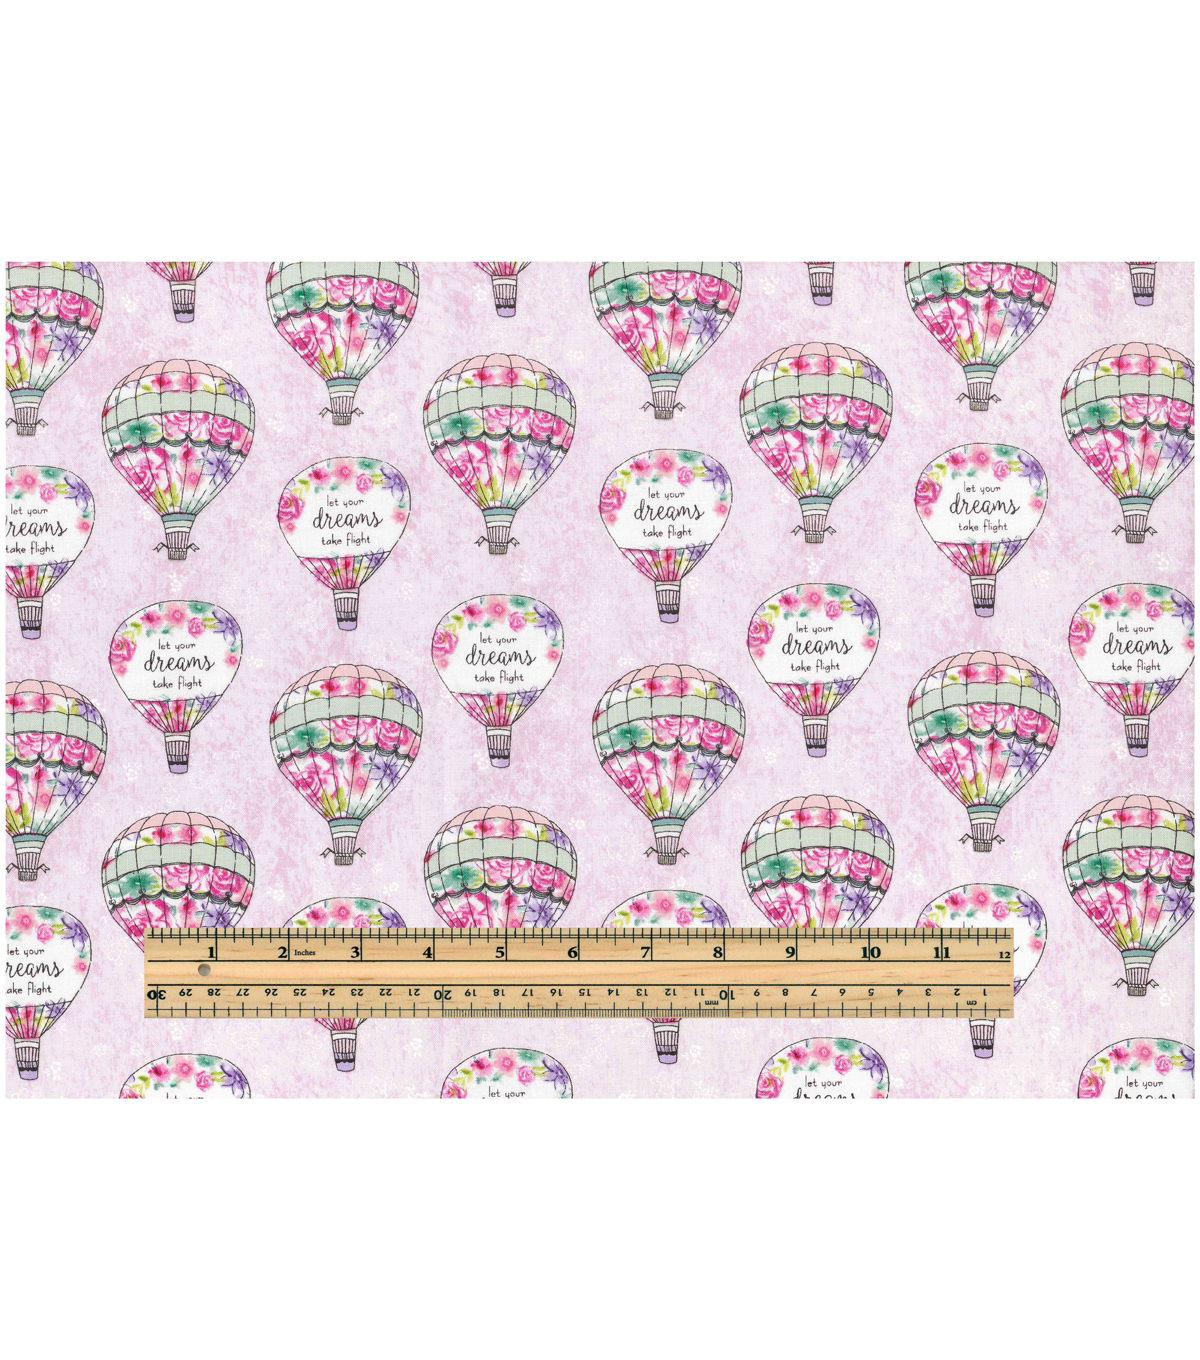 Novelty Cotton Fabric-Let Your Dreams Take Flight